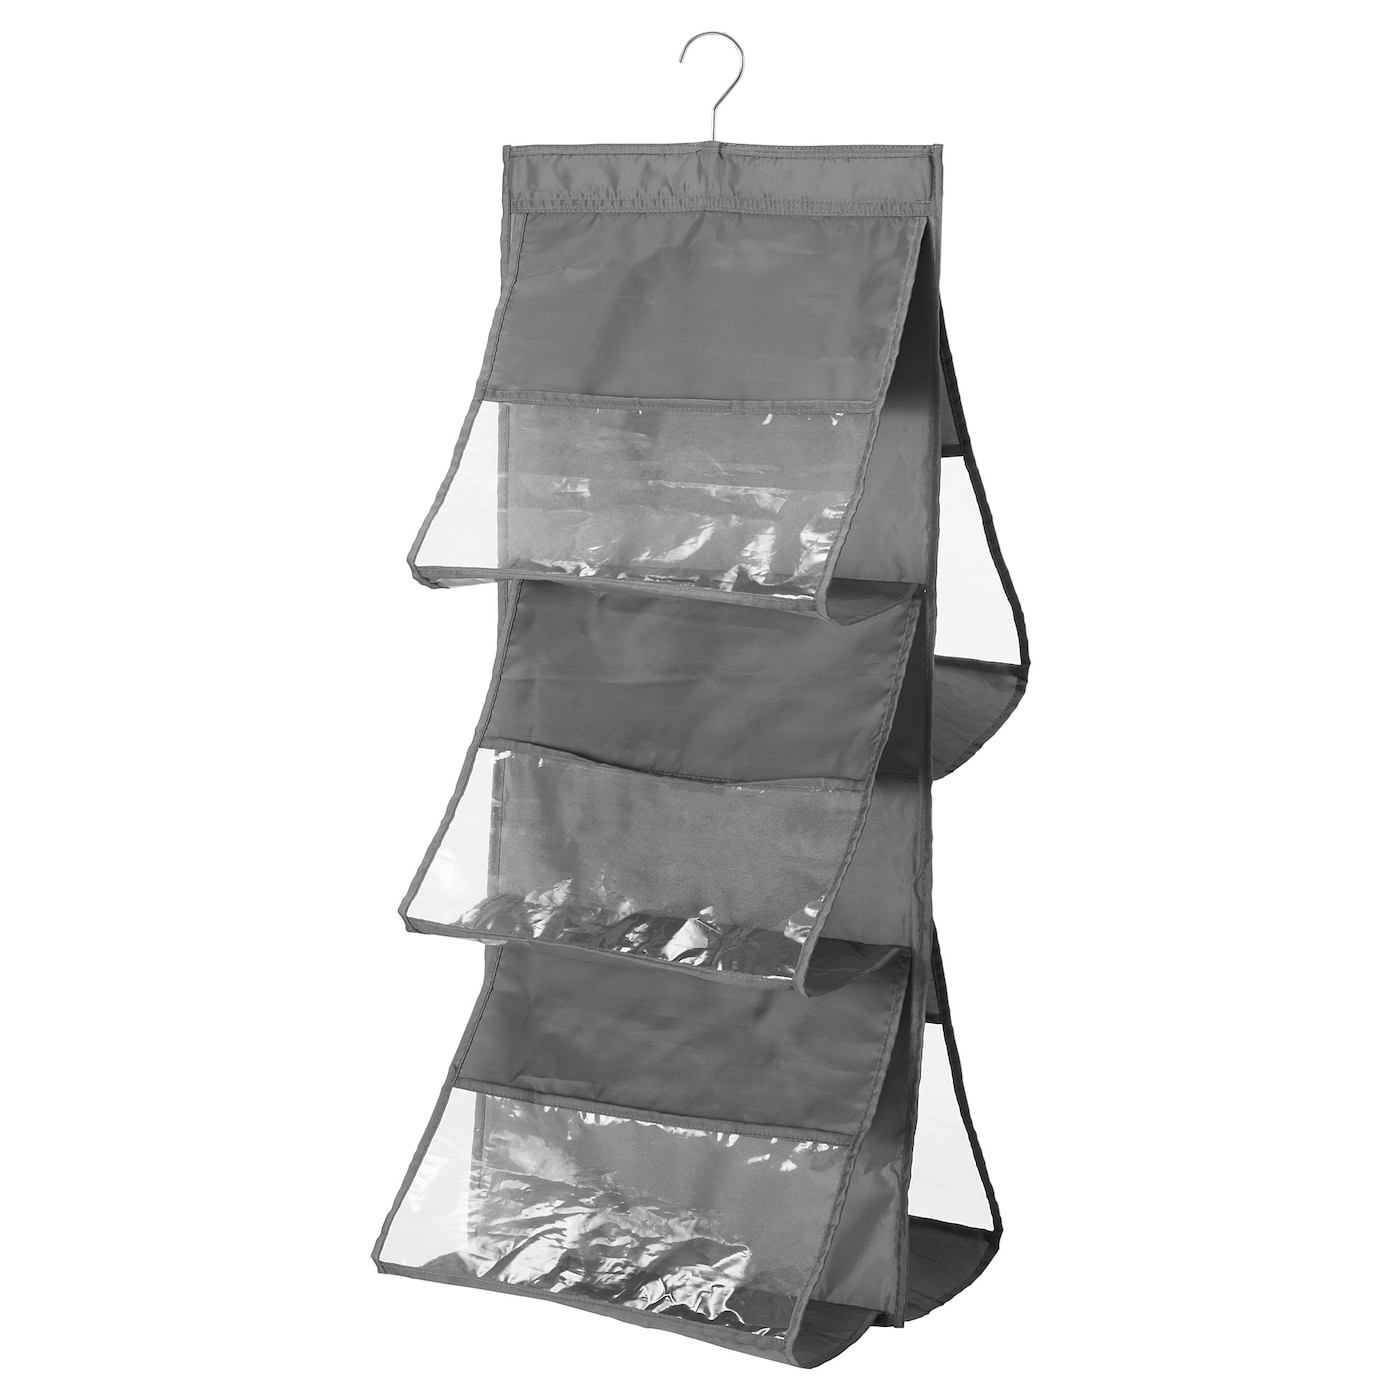 IKEA SKUBB hanging handbag organiser Helps you store and protect your bags when not in use.